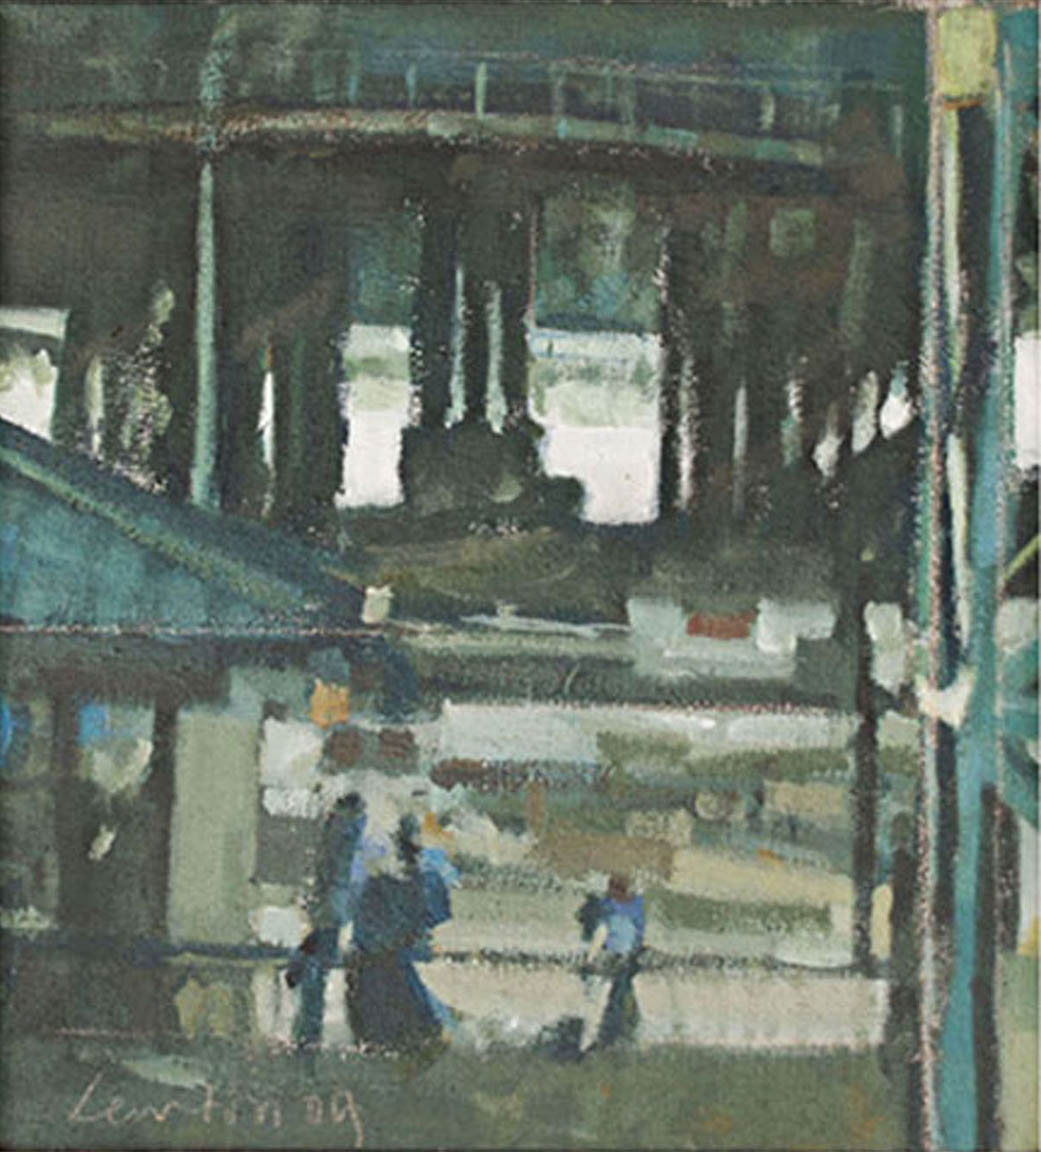 "Whitby Island Ferry Terminal Dock, acrylic on canvas, 12"" x 11"", 2009"